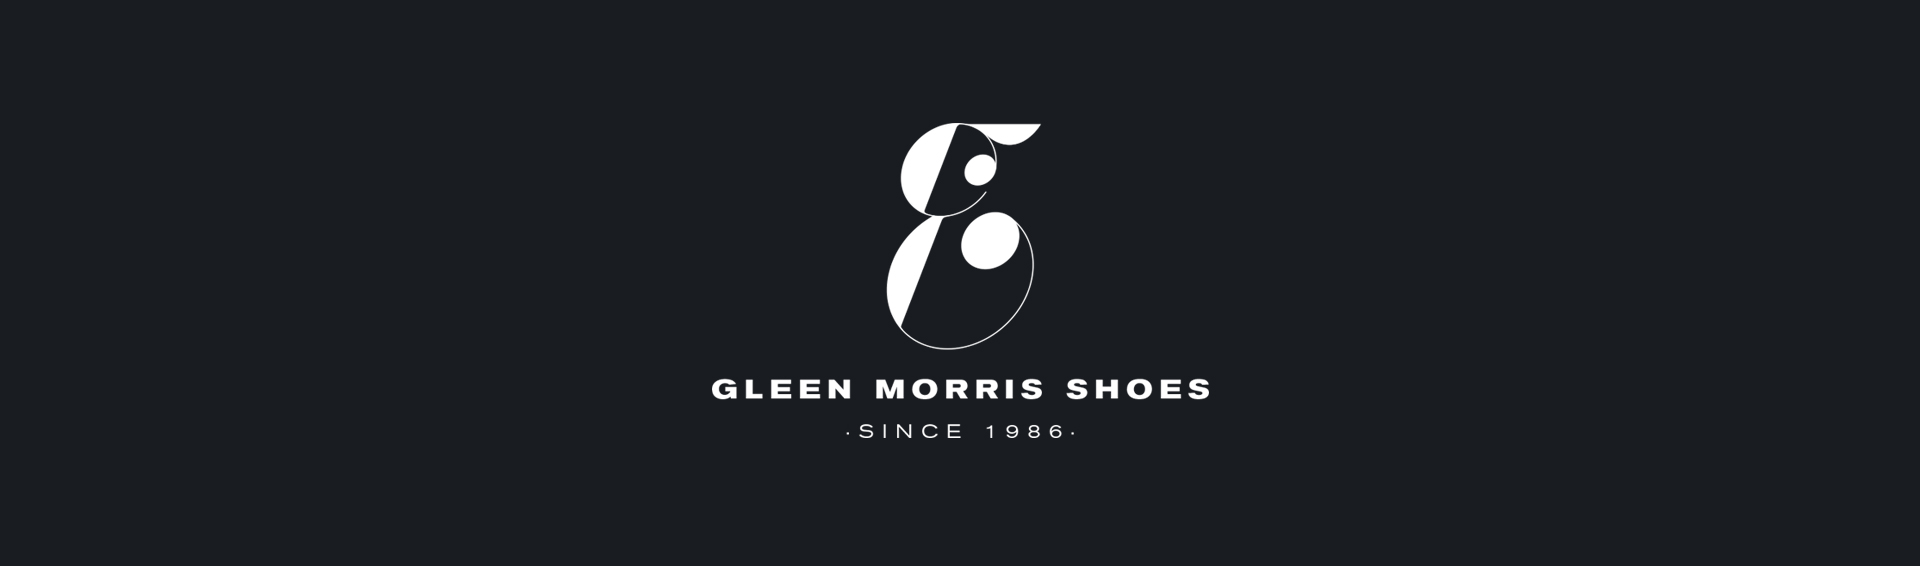 glennmorris_logotype_identity_corporate